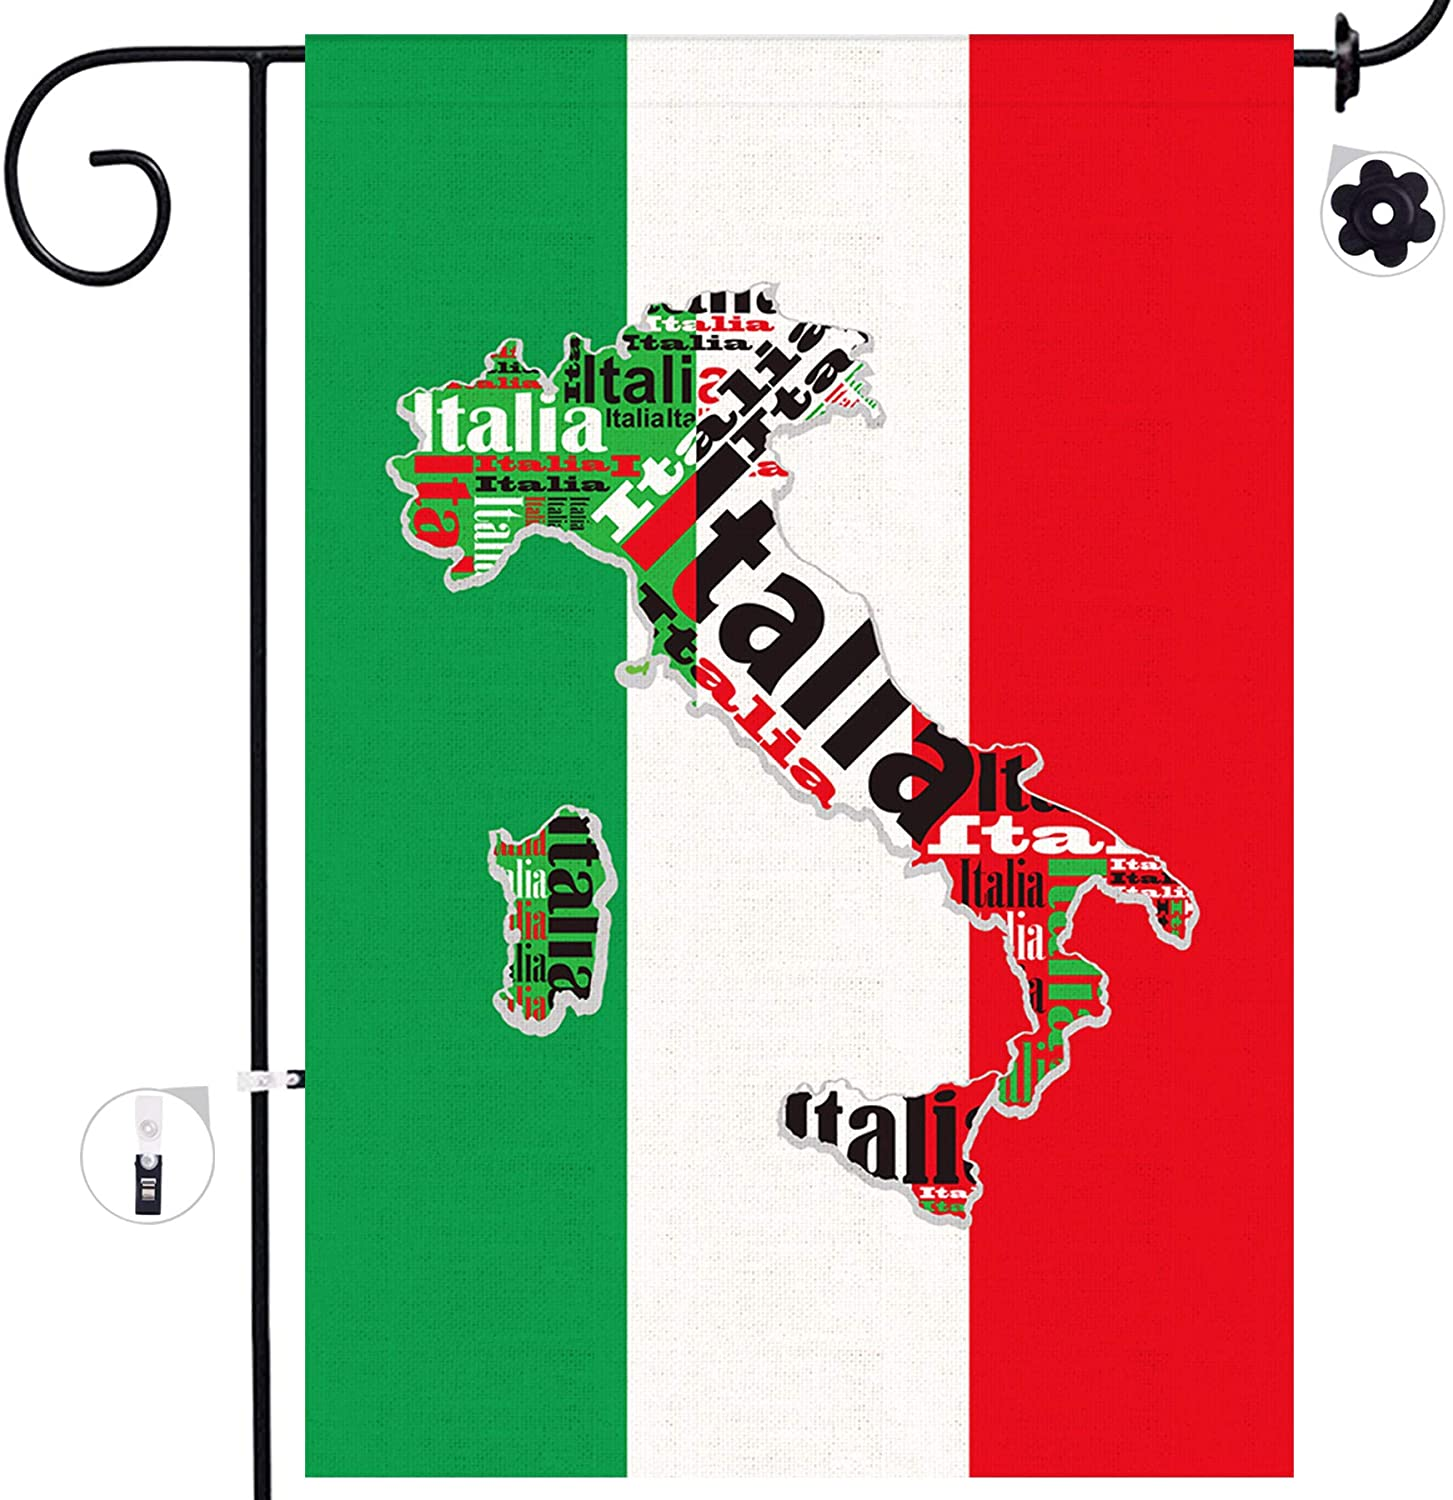 Amazon Com Bonsai Tree Italian Garden Flag Double Sided Italy Map Burlap House Flags 12x18 Prime National Country Yard Signs State Home Outdoor Decor Banners Garden Outdoor